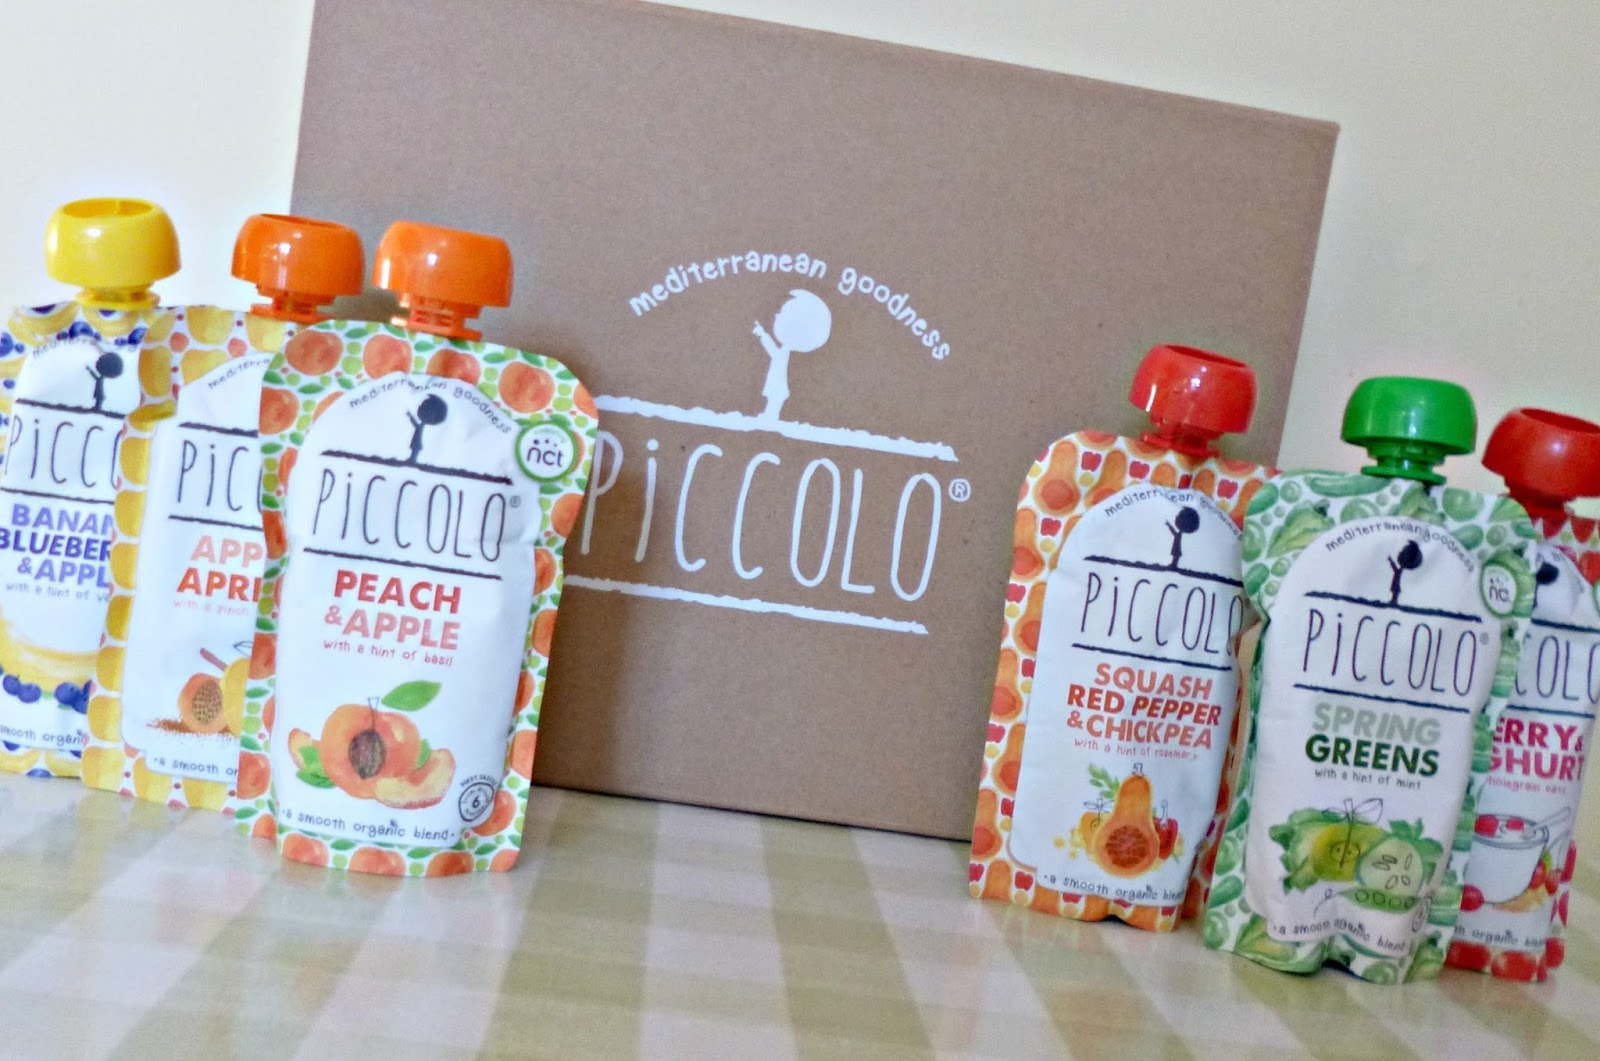 Tasty Organic baby food from Piccolo